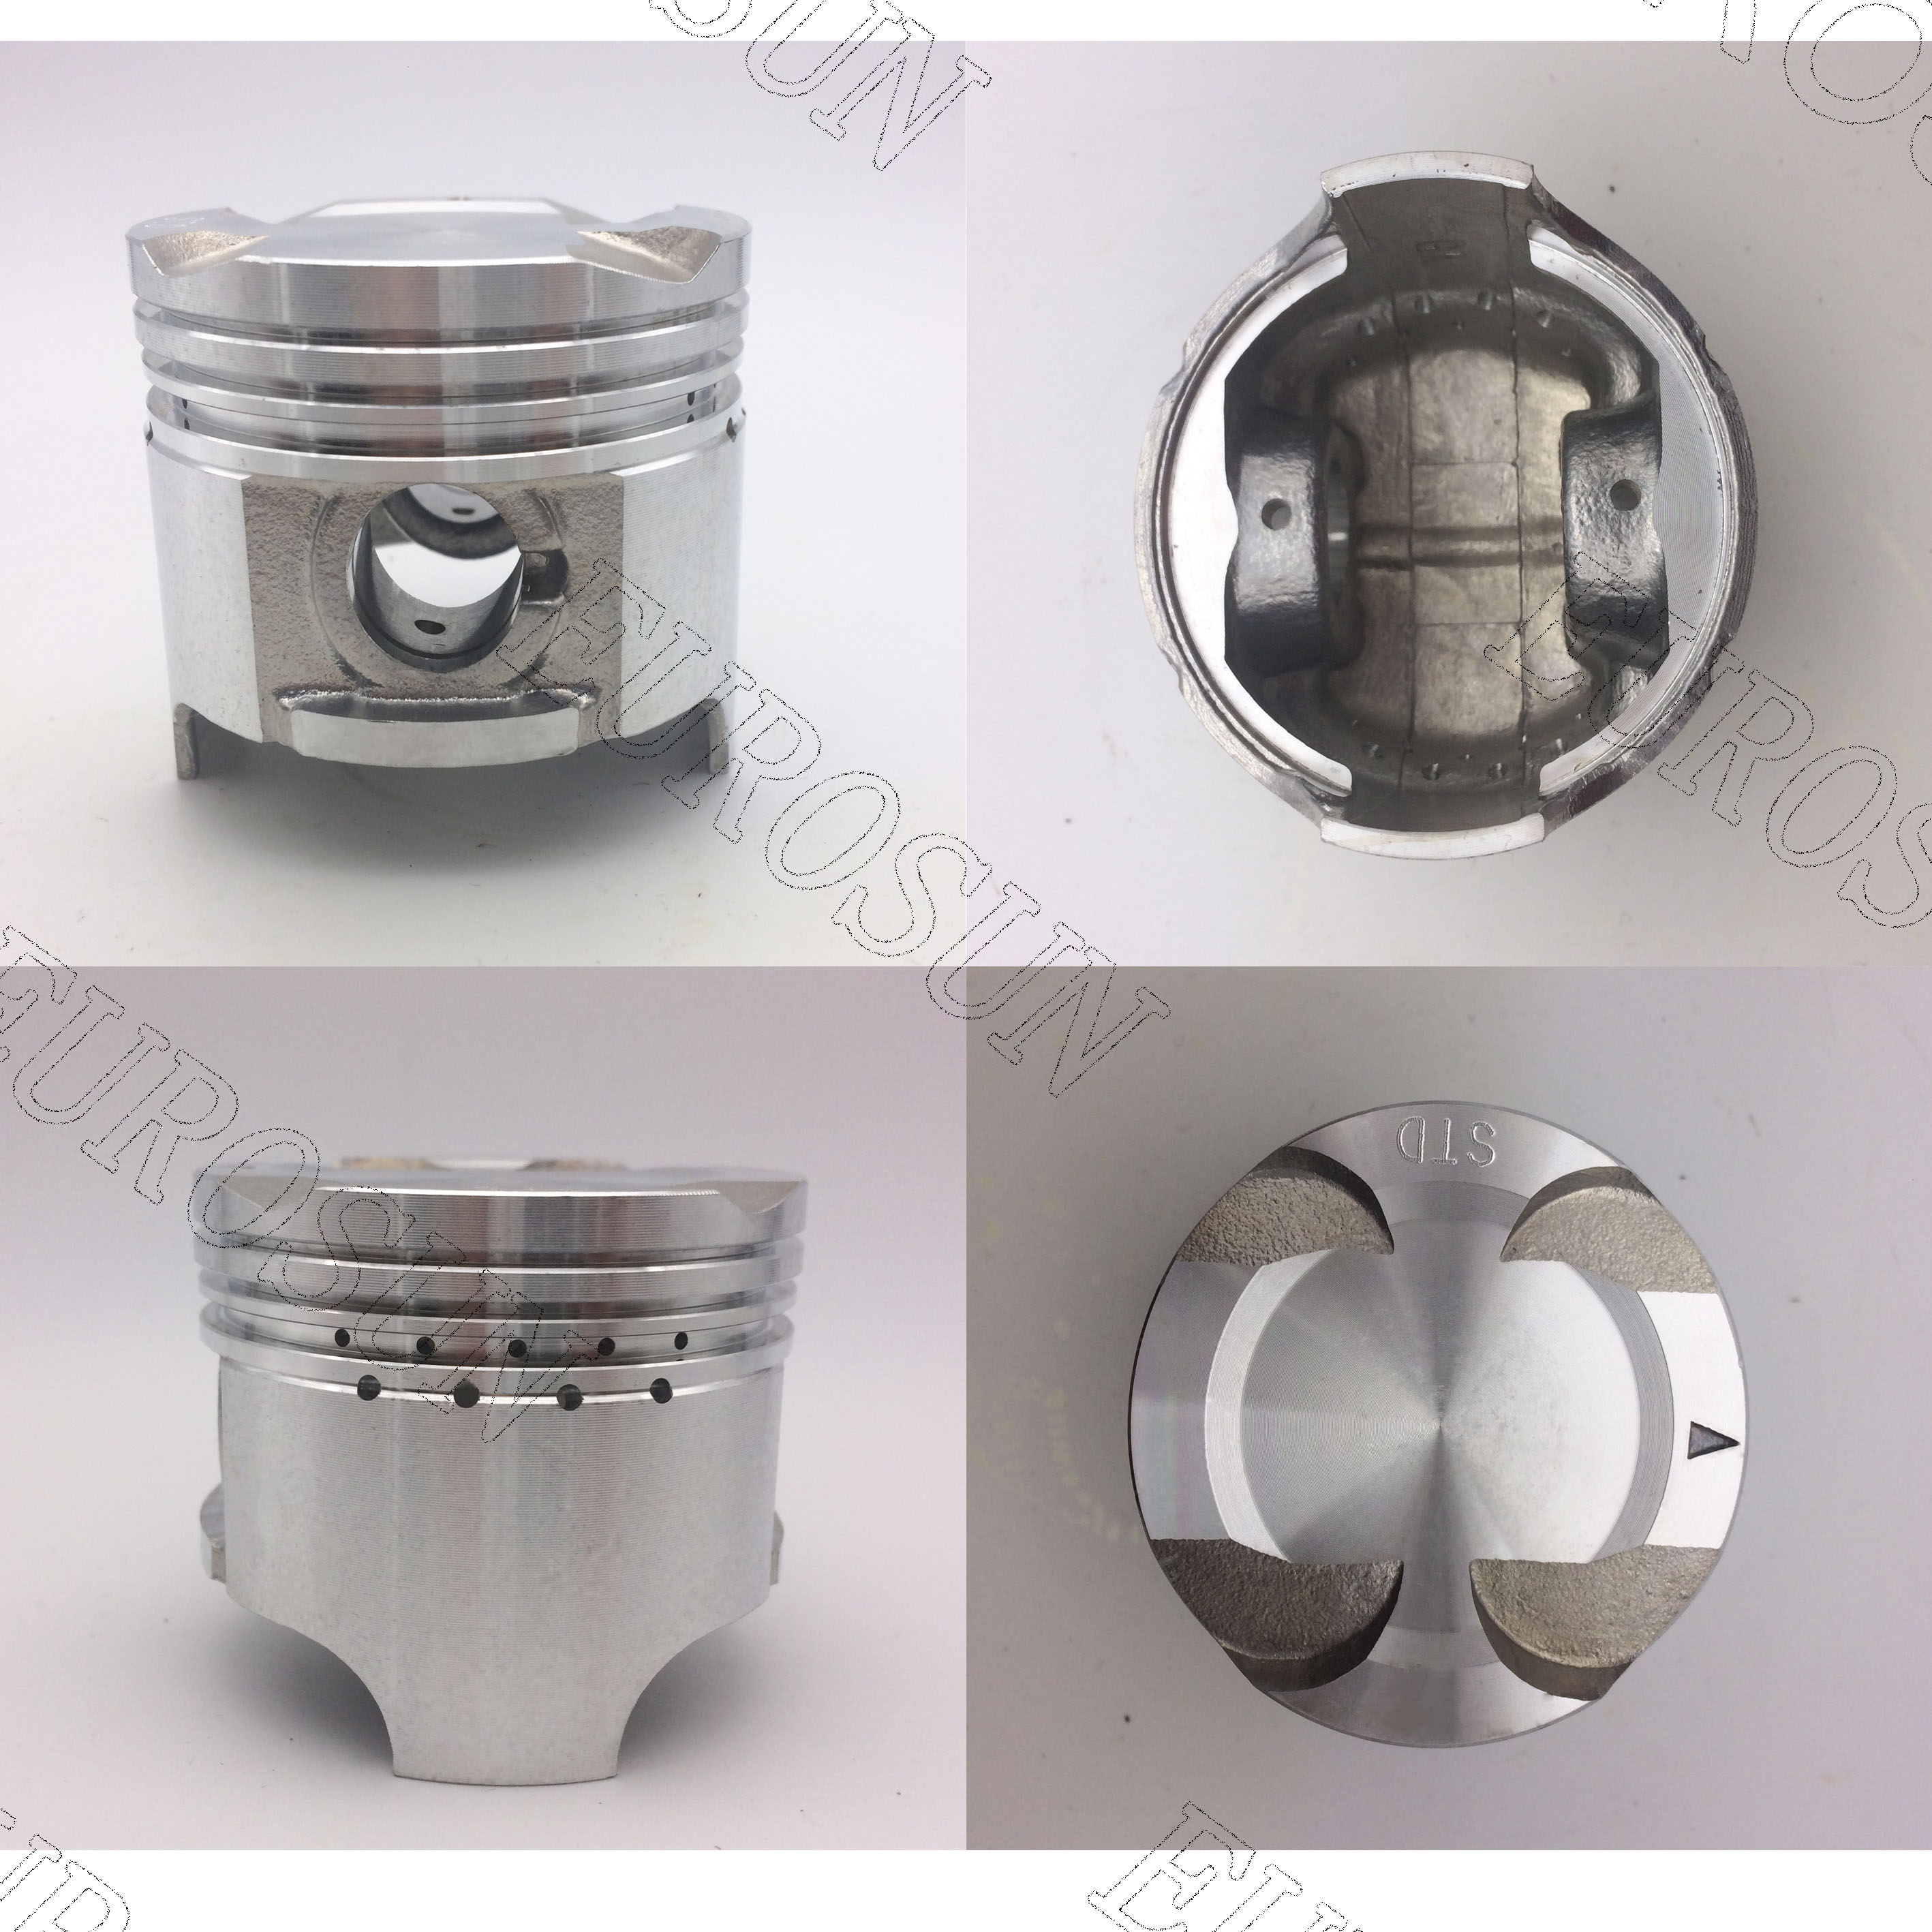 SUZUKI F6A (12111-86050) piston with pin and clips